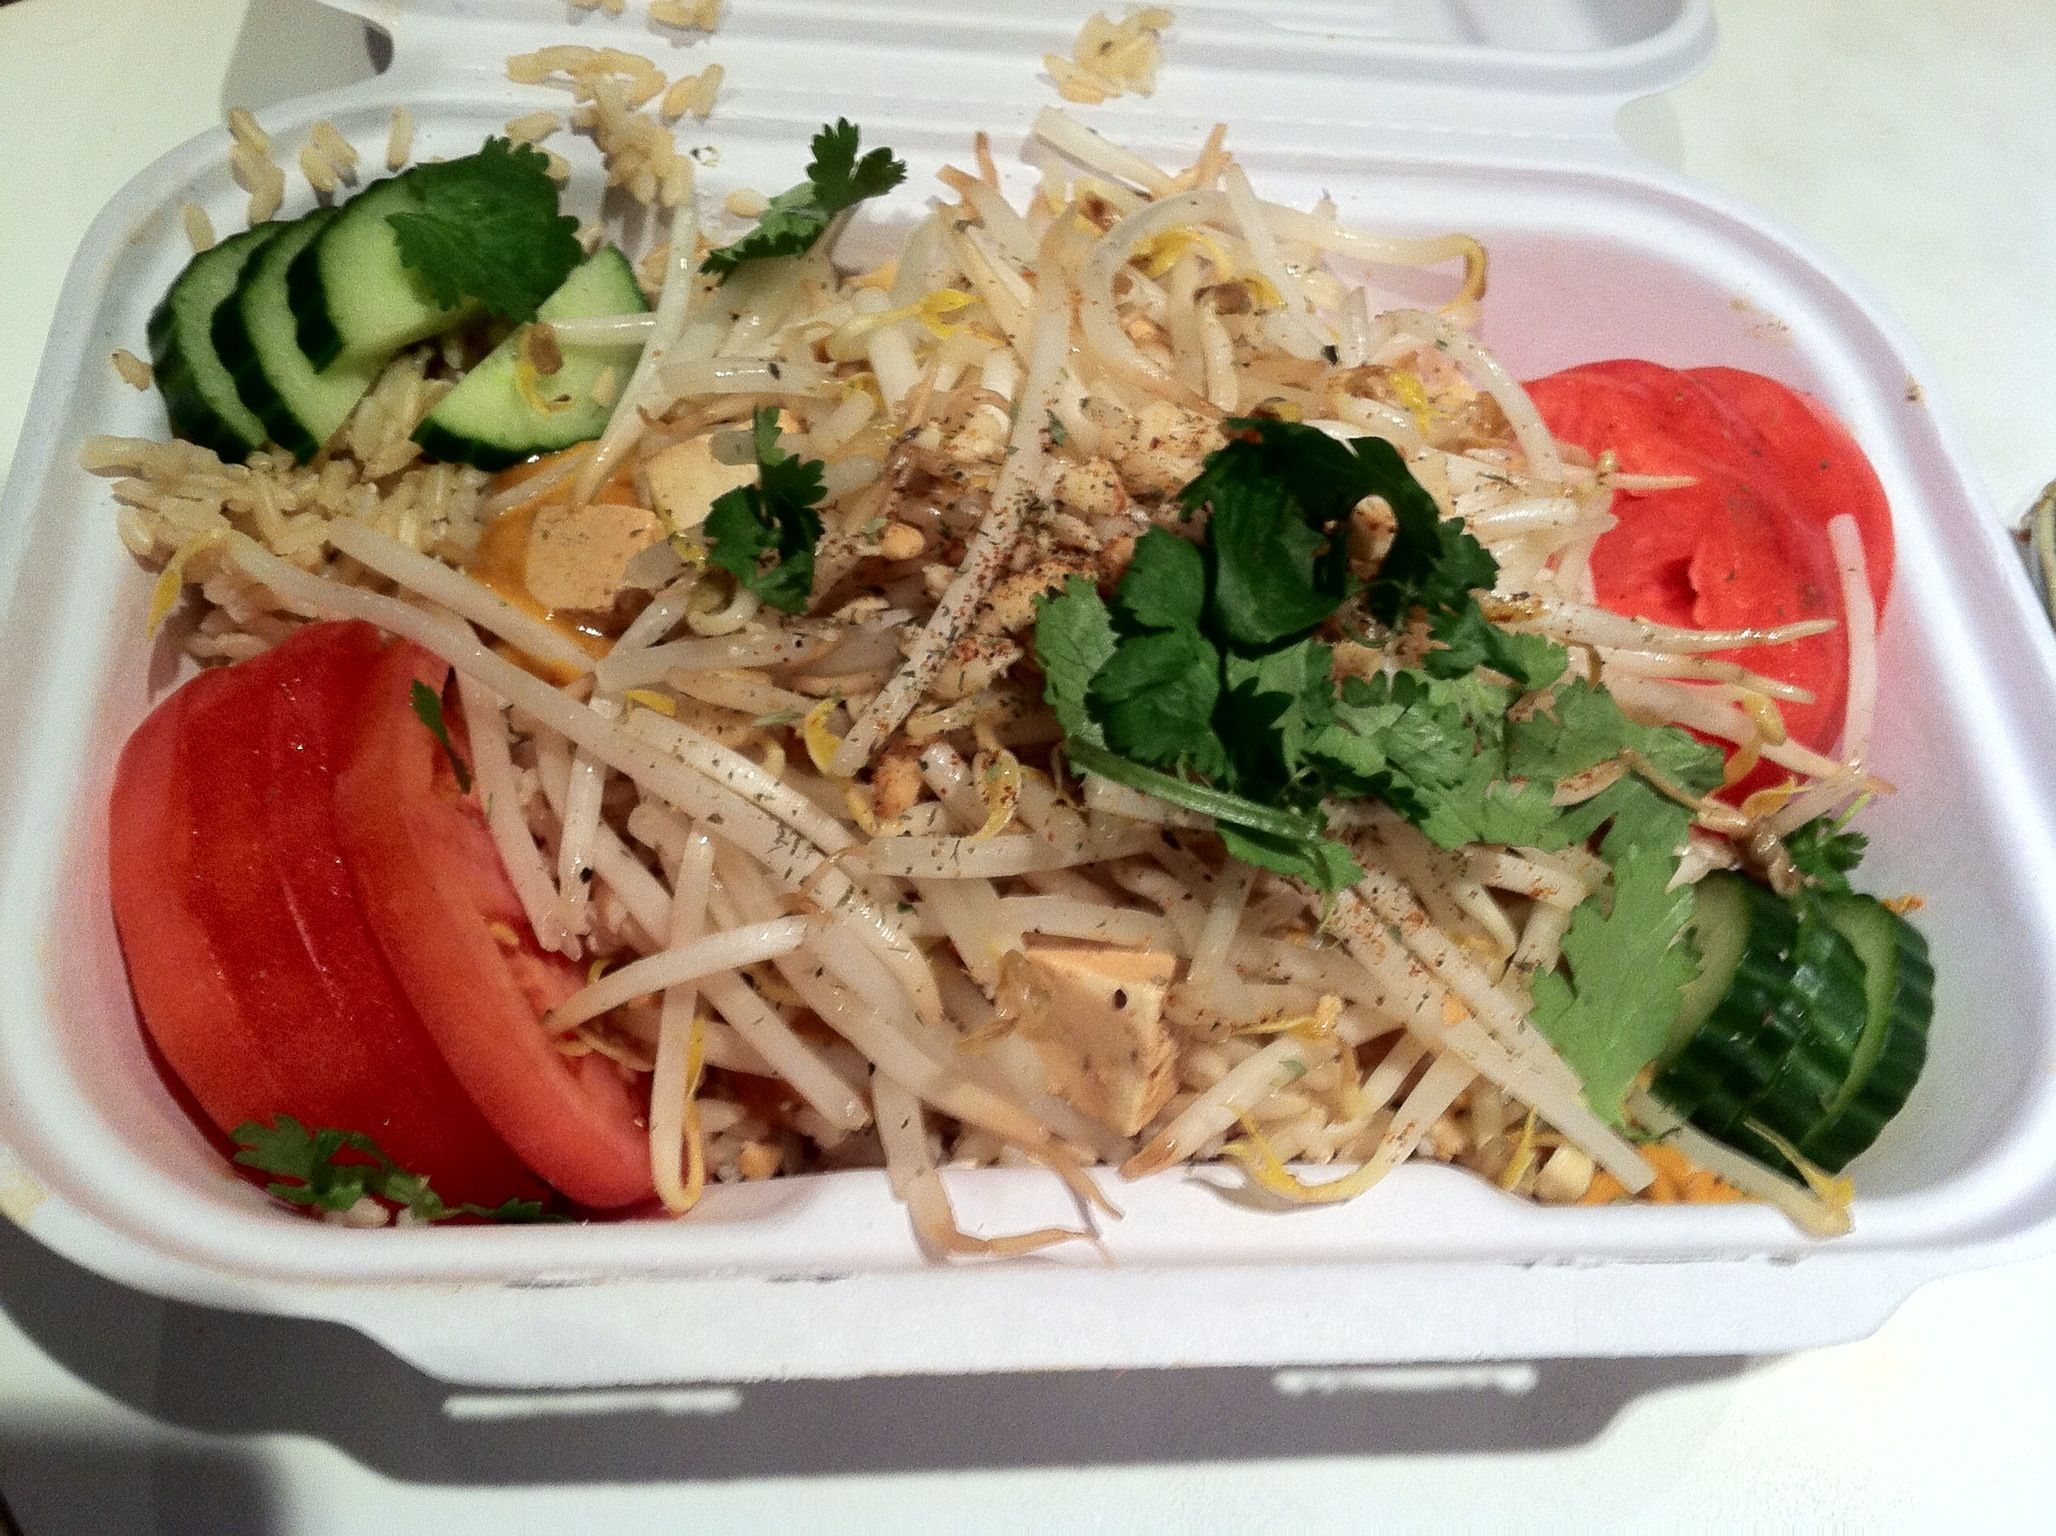 More Yummy Vegan Gluten Free Food From Fresh In Toronto Canada Their Buddha Bowl Which Includes Thai Peanut Sauce W Vegan Gluten Free Food Gluten Free Recipes